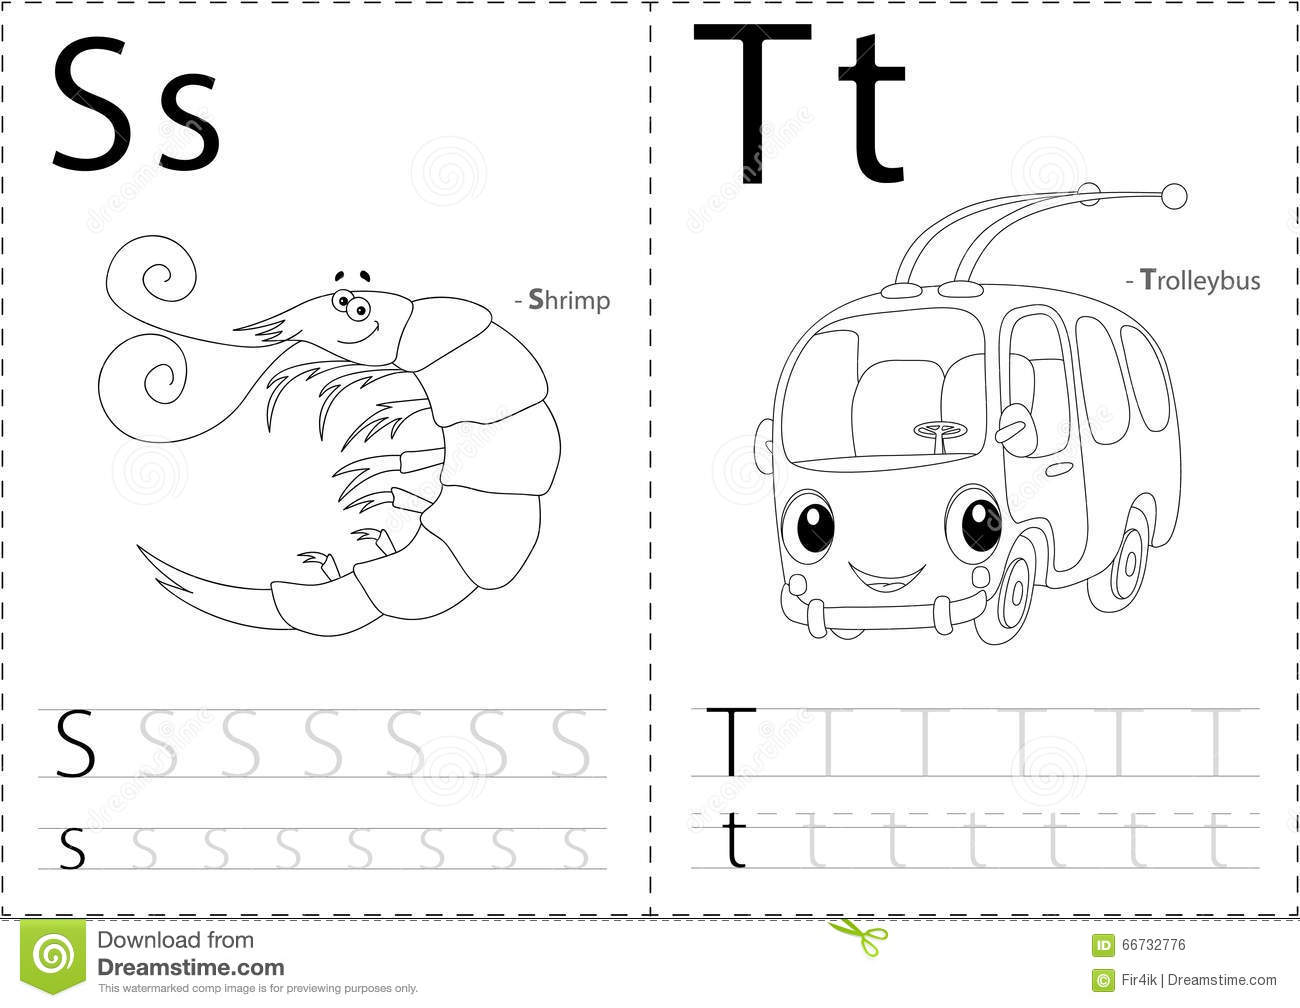 Cartoon Shrimp And Trolleybus Alphabet Tracing Worksheet Writi Stock Illustration